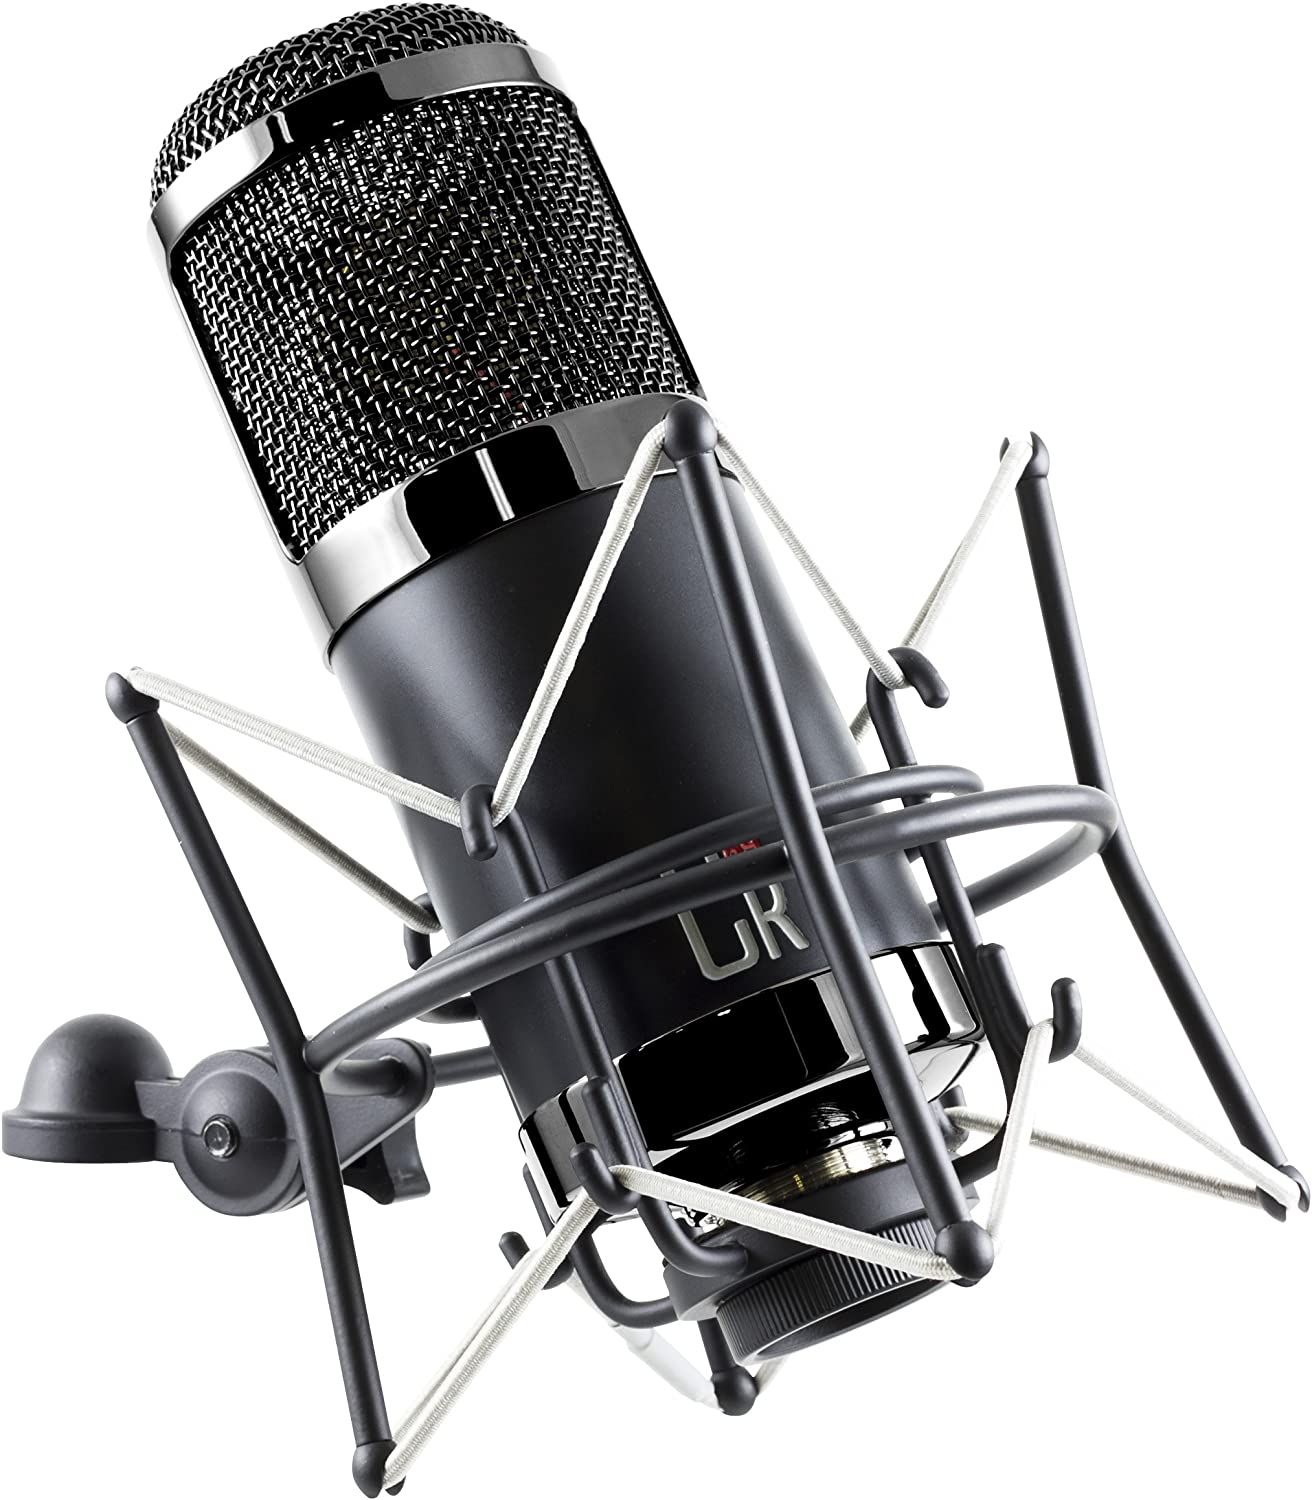 MXL MXLCR89 Low Noise Condenser Microphone by MXL